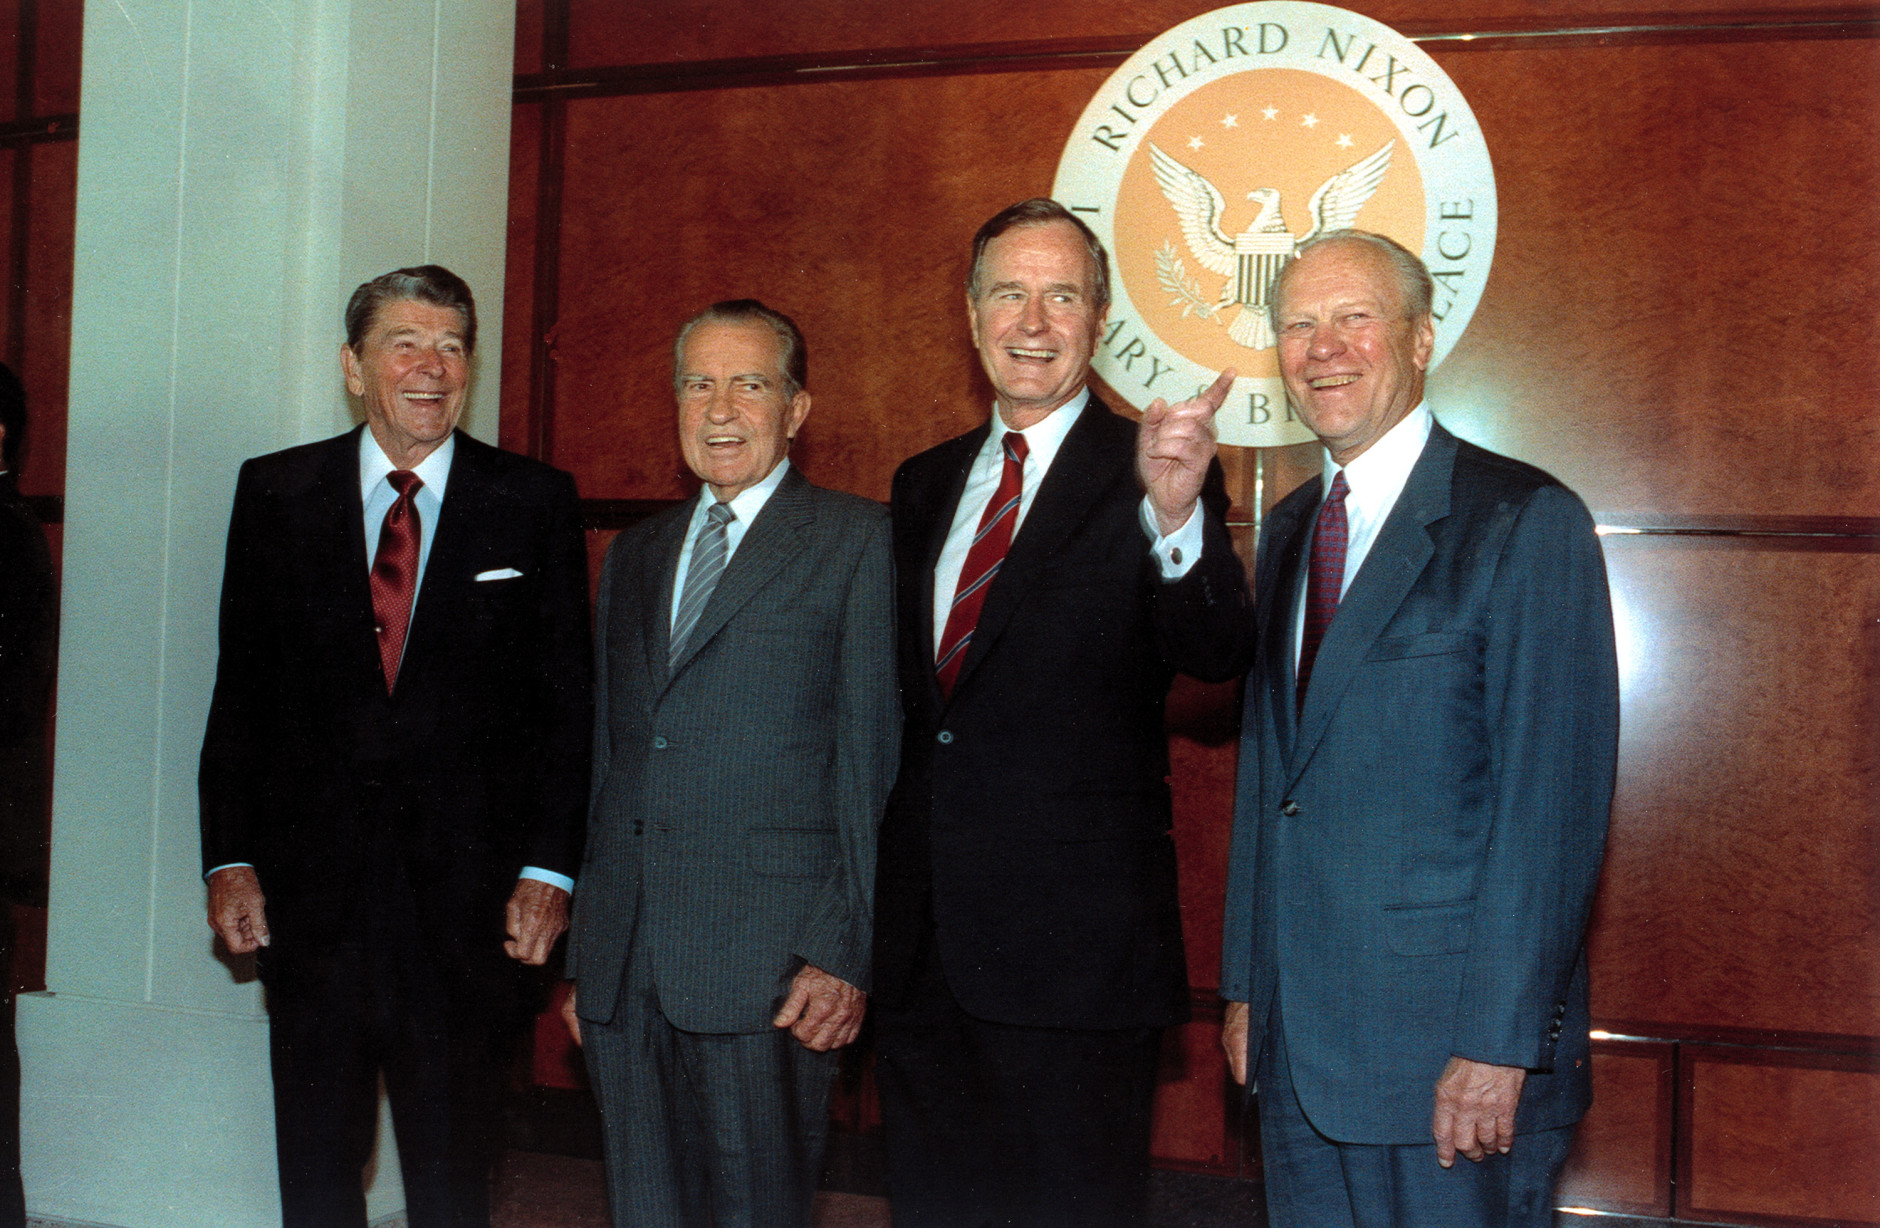 Former U.S. presidents Ronald Reagan, left, Richard Nixon, and Gerarld Ford, far right, pose with U.S. President George Bush, second from right, in the Richard Nixon Library and Birthplace in Yorba Linda, Ca., July 19, 1990.  (AP Photo/Barry Thumma)